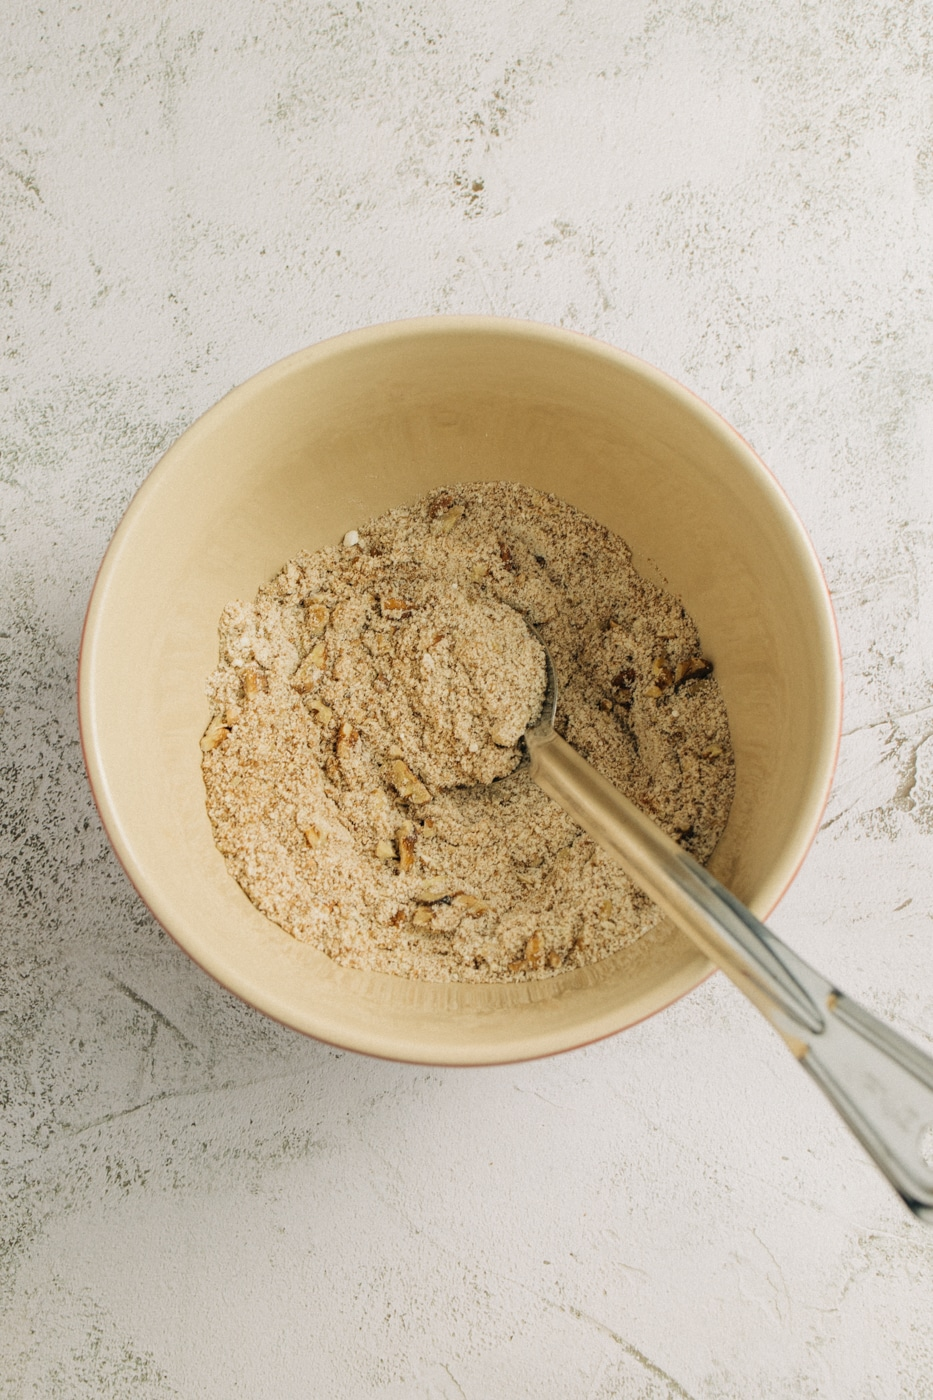 Image of dry ingredients combined together in a mixing bowl